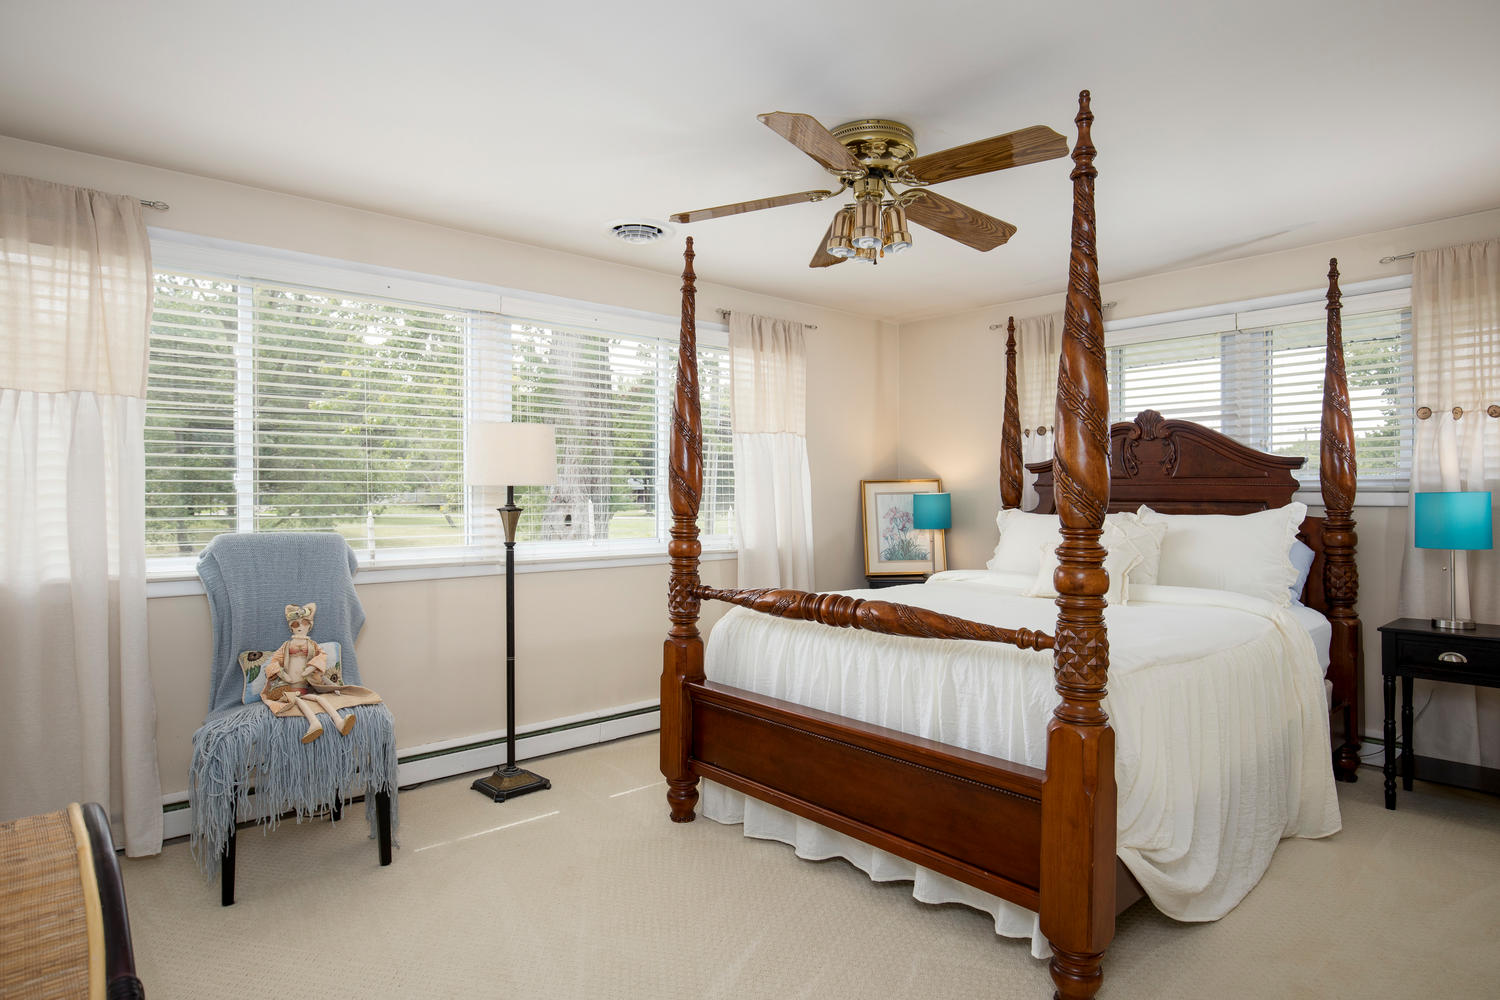 5258 Armor Duells Rd Orchard-large-017-005-Bedroom-1500×1000-72dpi